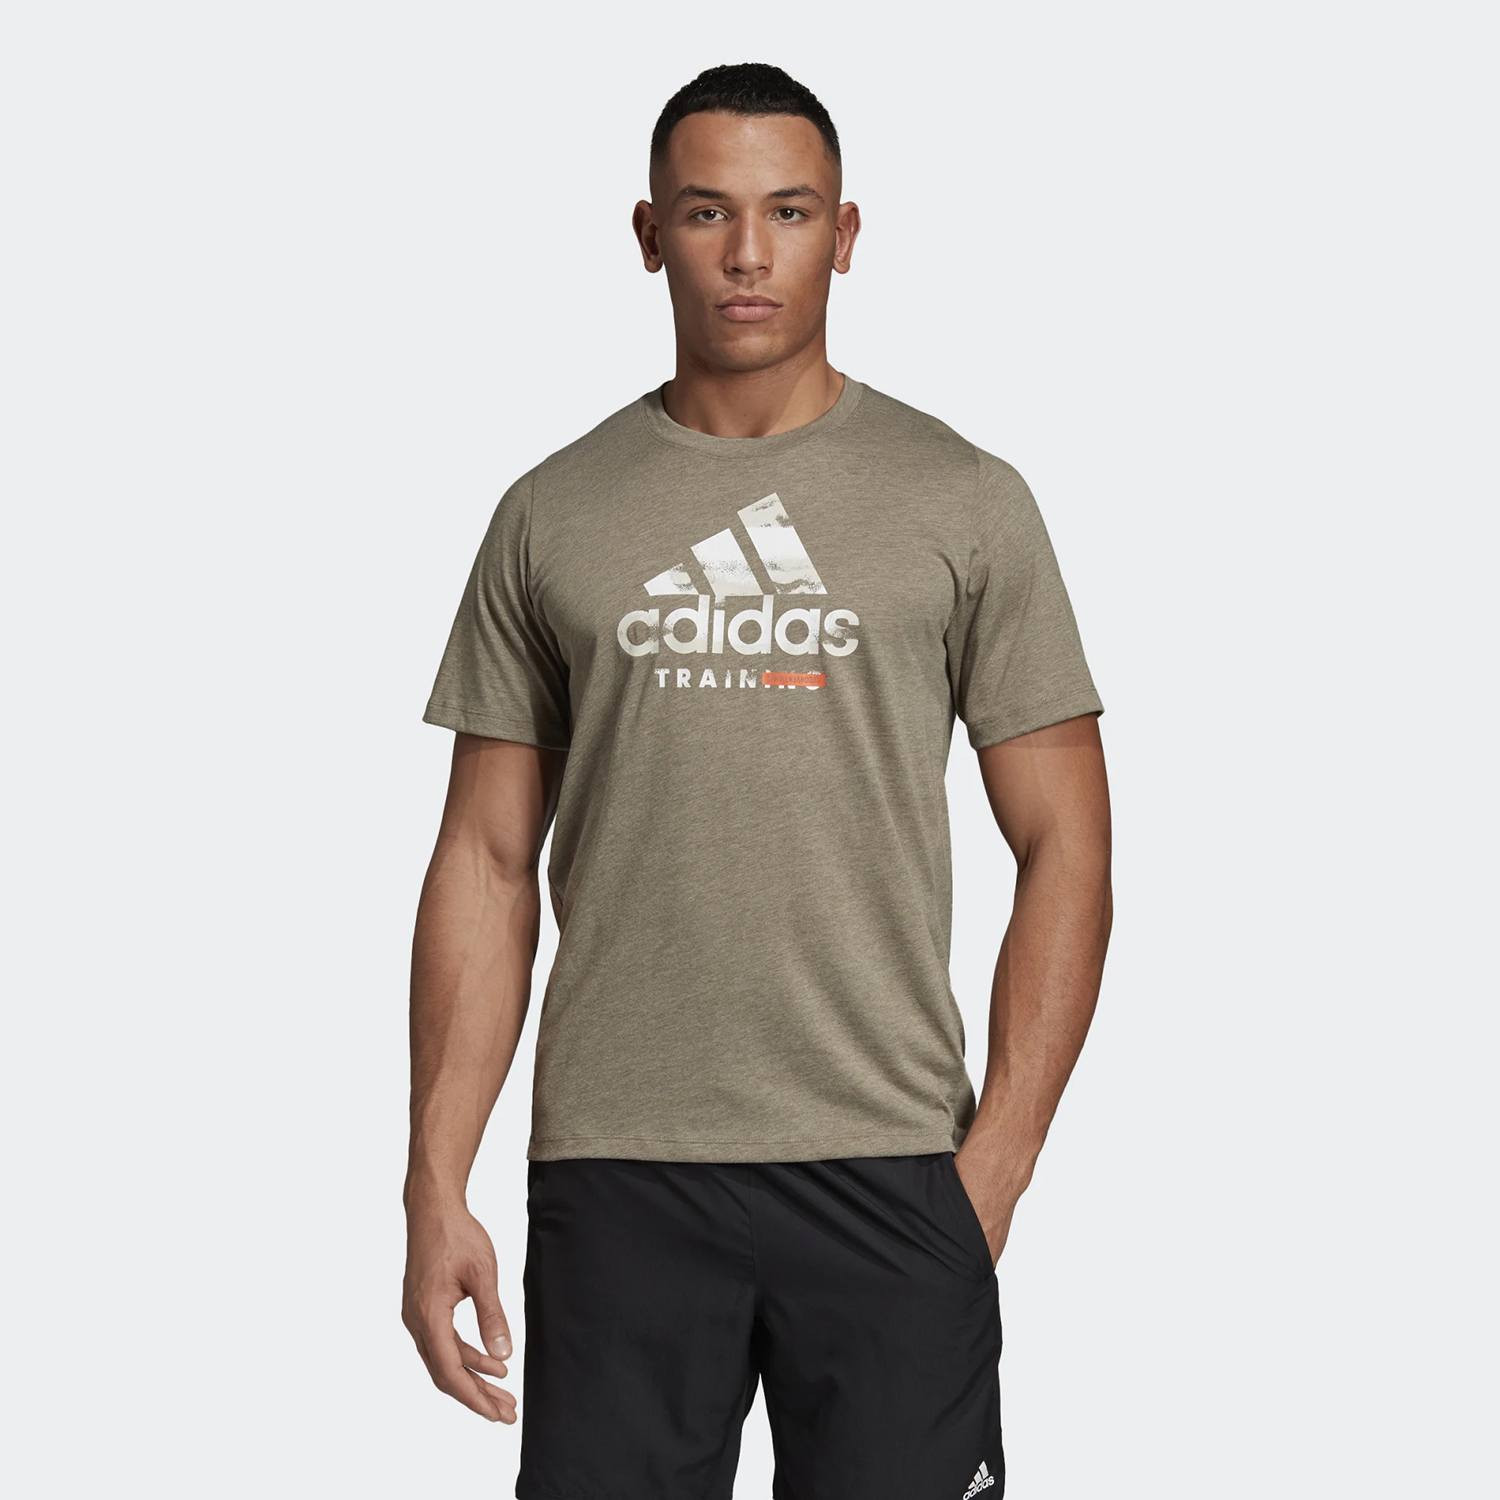 adidas FreeLift 360 Graphic Logo Men's Tee (9000023730_37220)